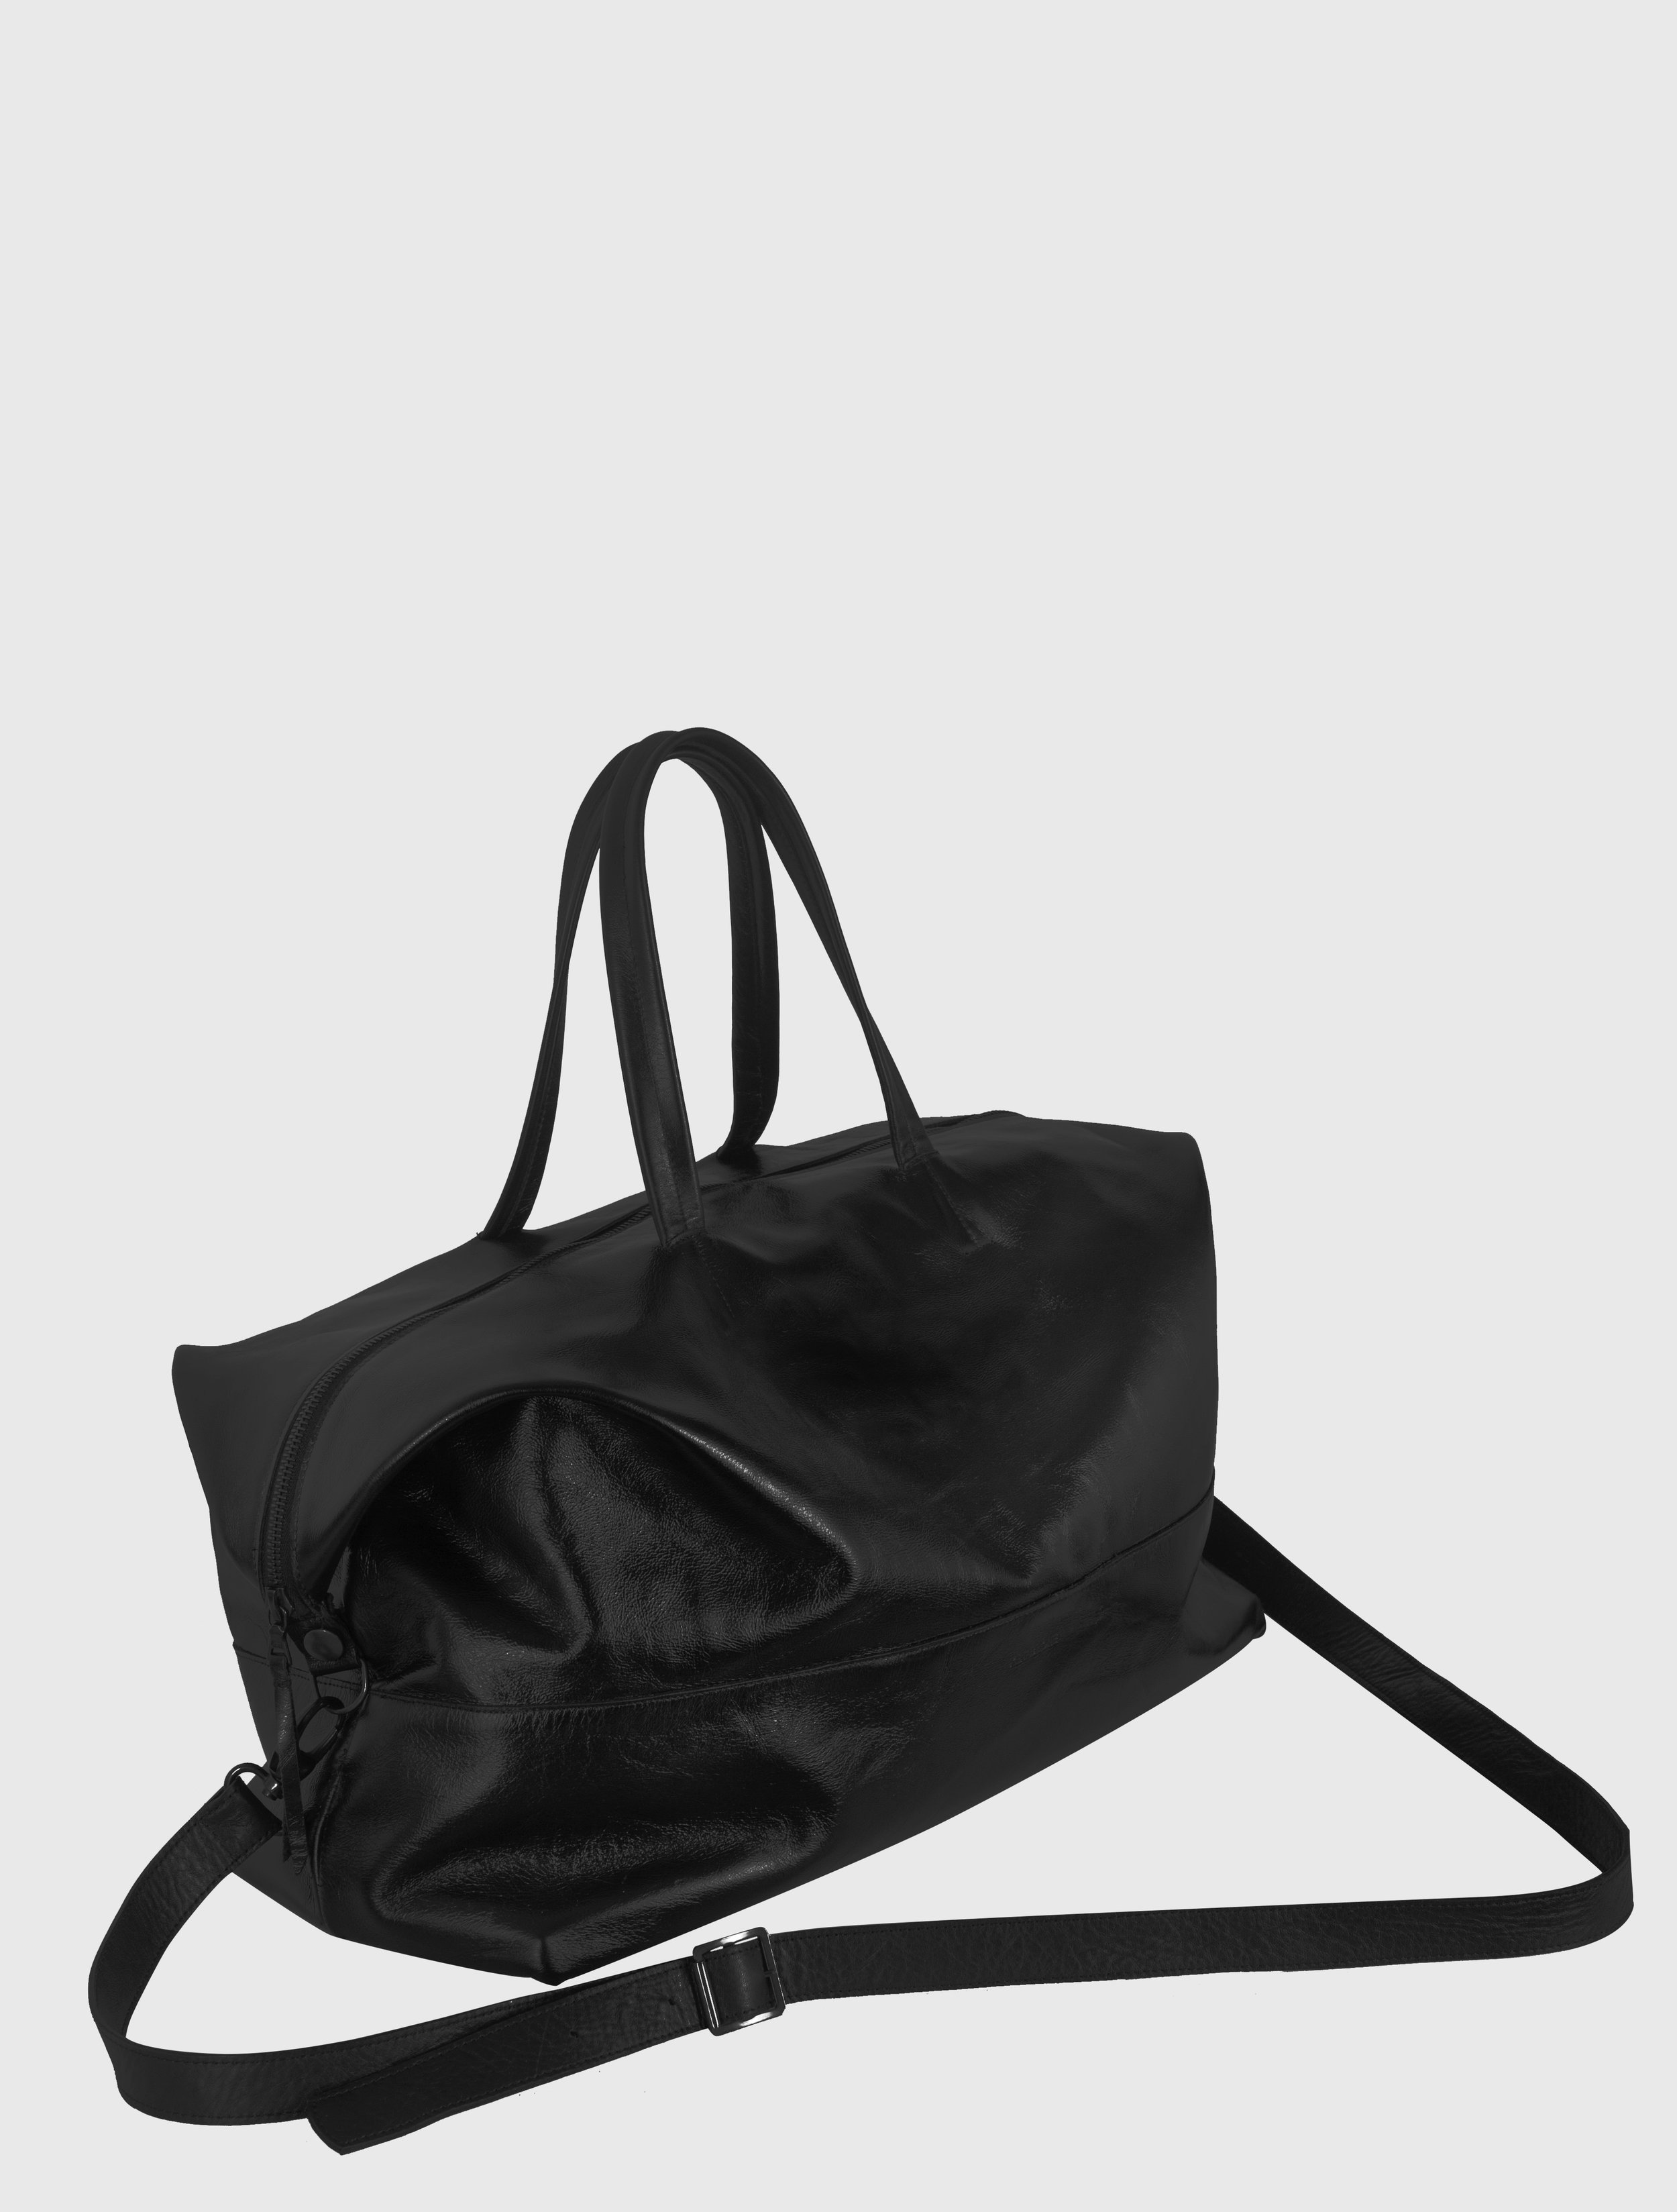 2015-16 HOLDALL - BLACK SIDE.jpg